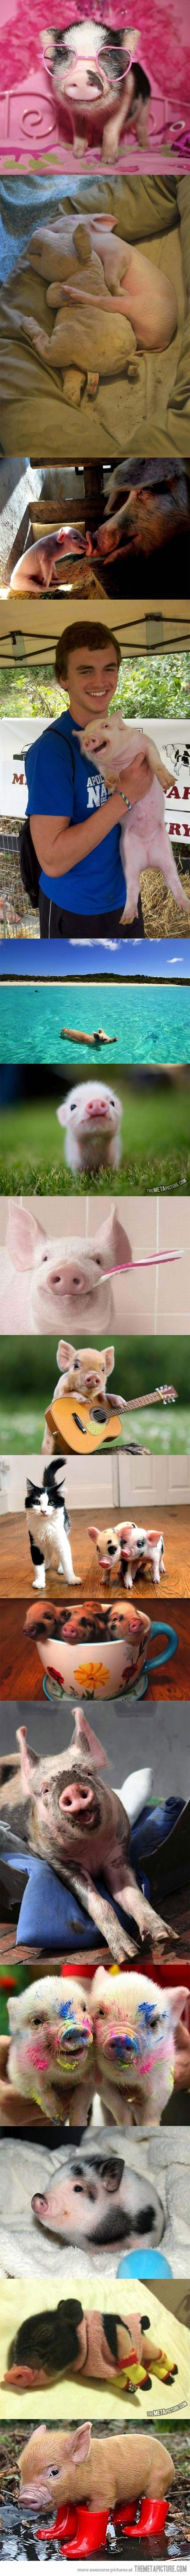 best pigs images on pinterest adorable animals cute pigs and